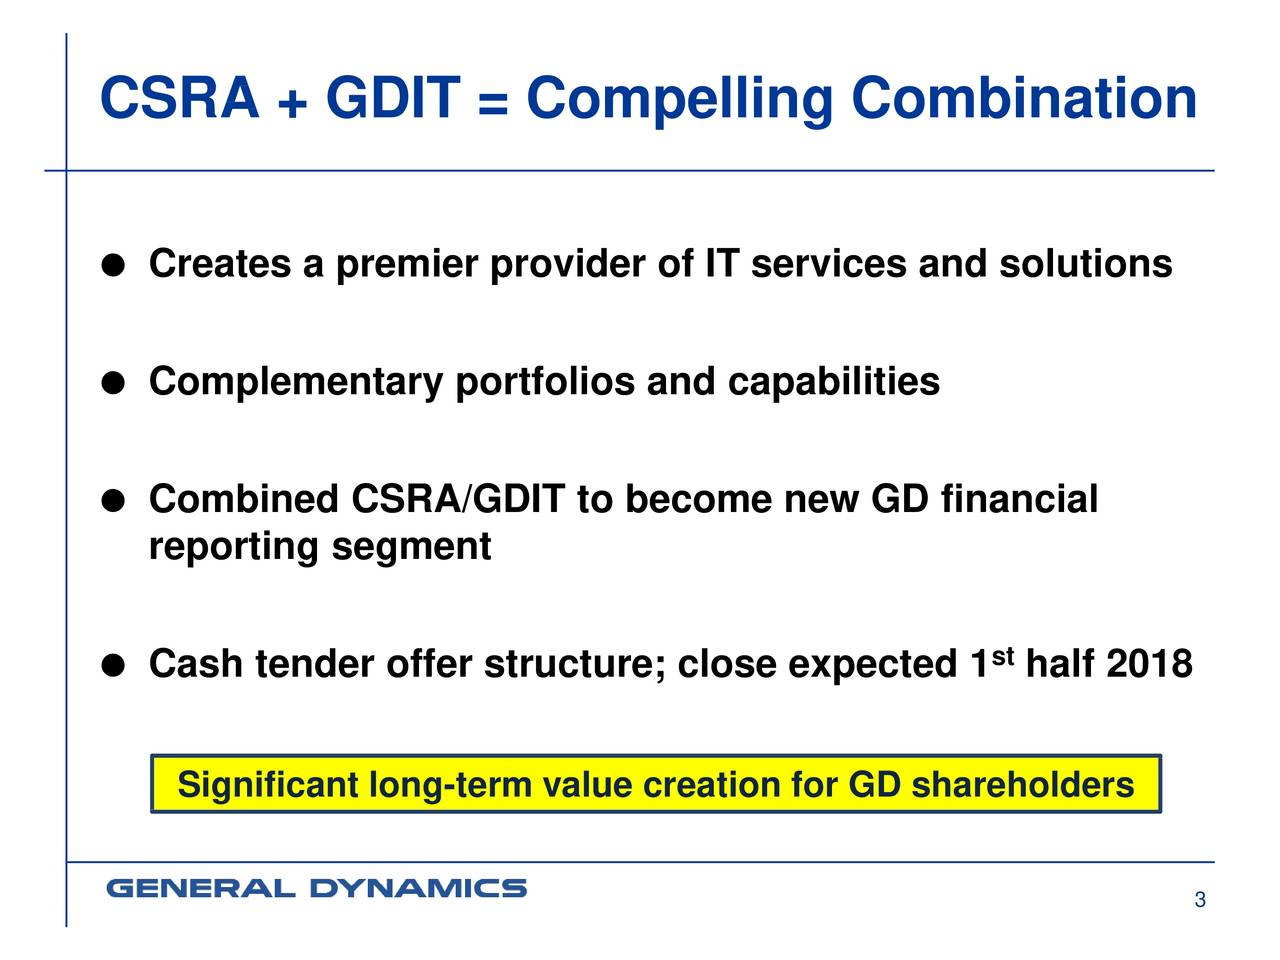  Creates a premier provider of IT services and solutions  Complementary portfolios and capabilities  Combined CSRA/GDIT to become new GD financial reporting segment  Cash tender offer structure; close expected 1 half 2018 Significant long-term value creation for GD shareholders 3